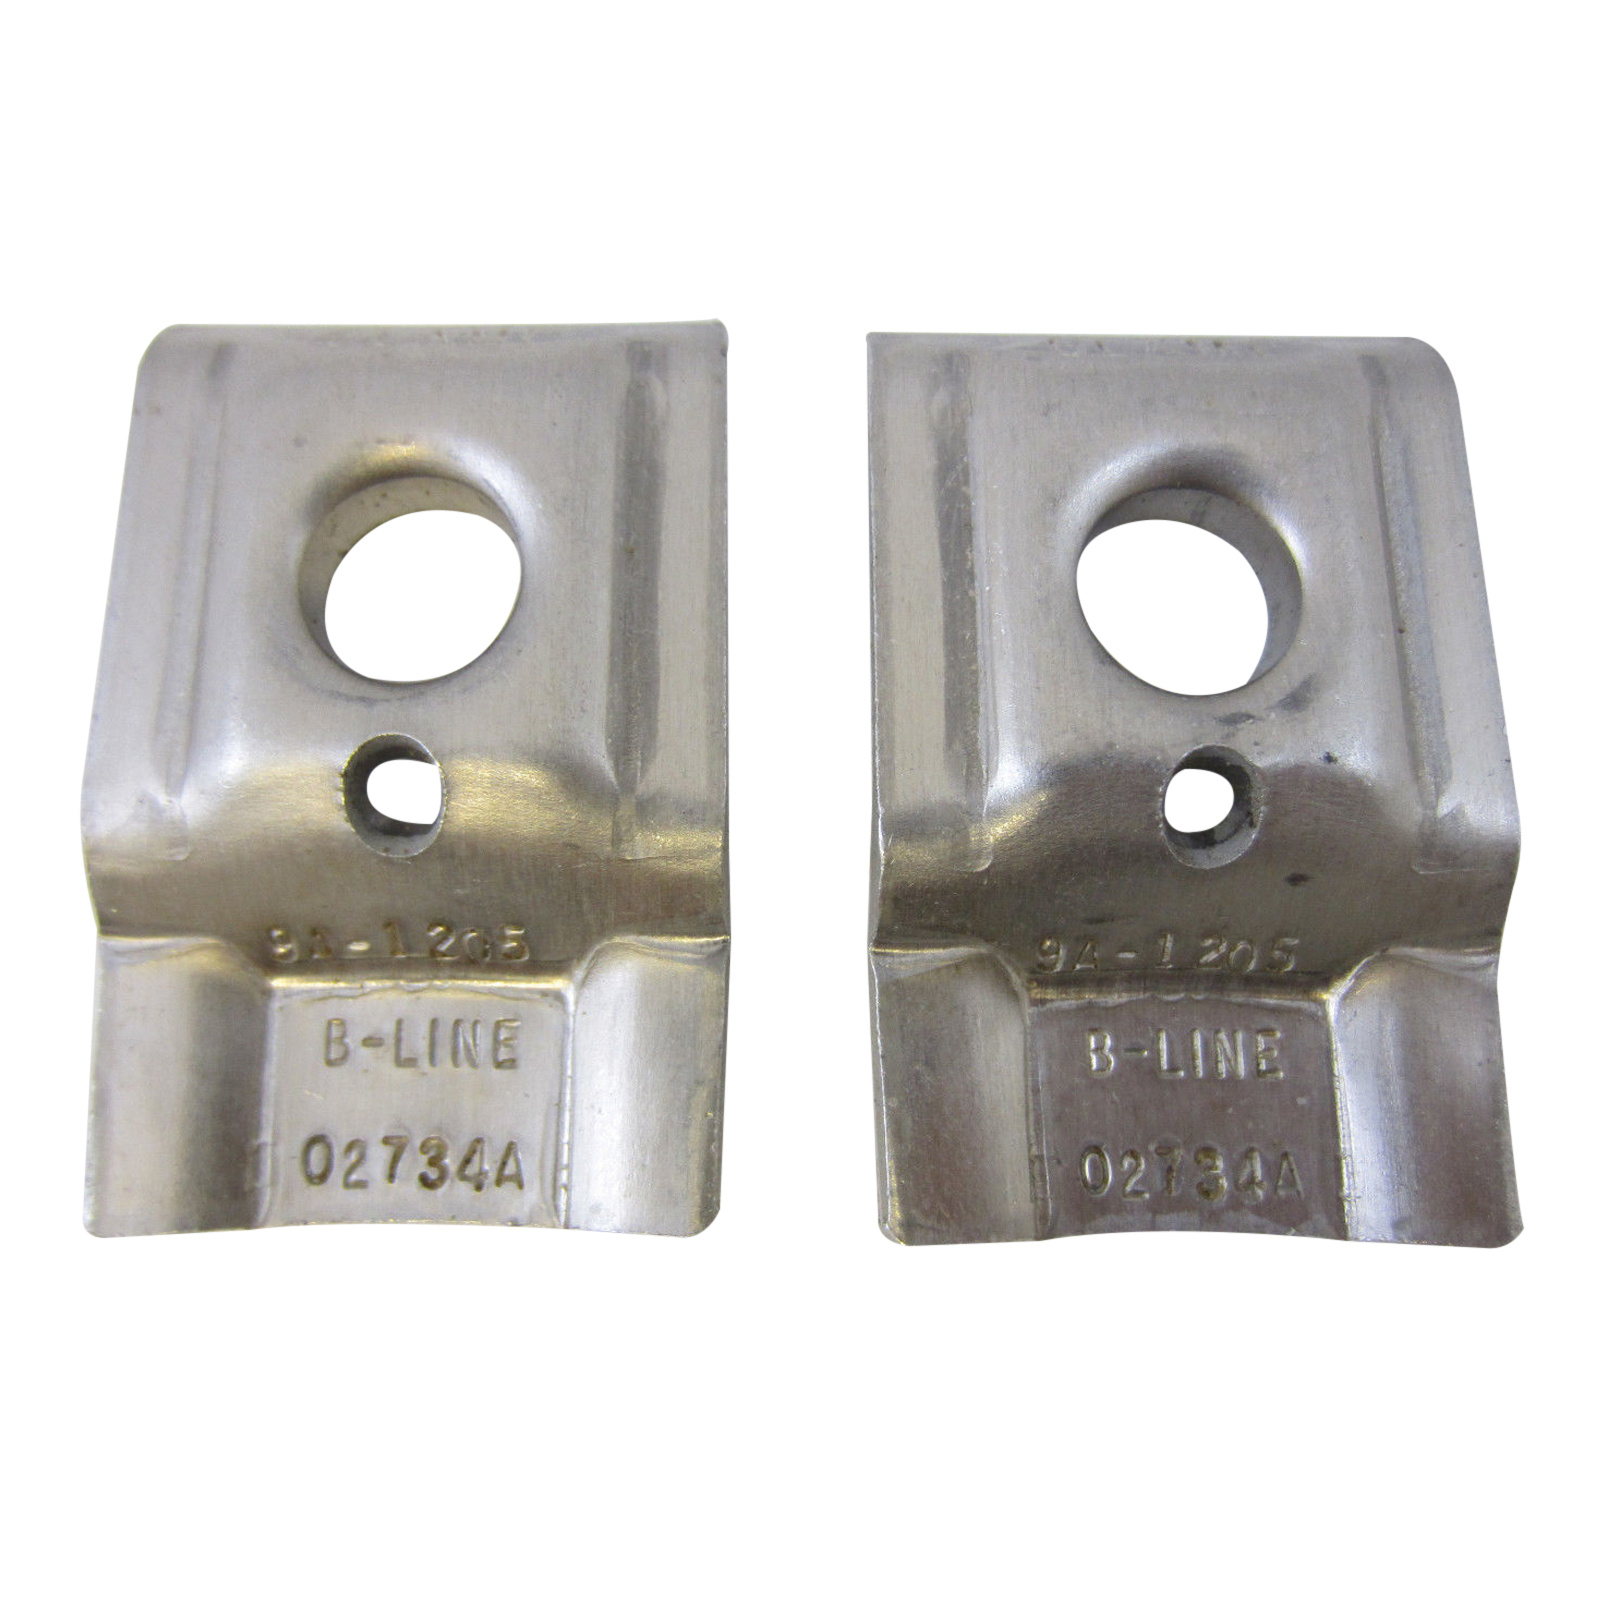 B Line 9a 1205 Aluminum Cable Tray Clamp Guide Conduit